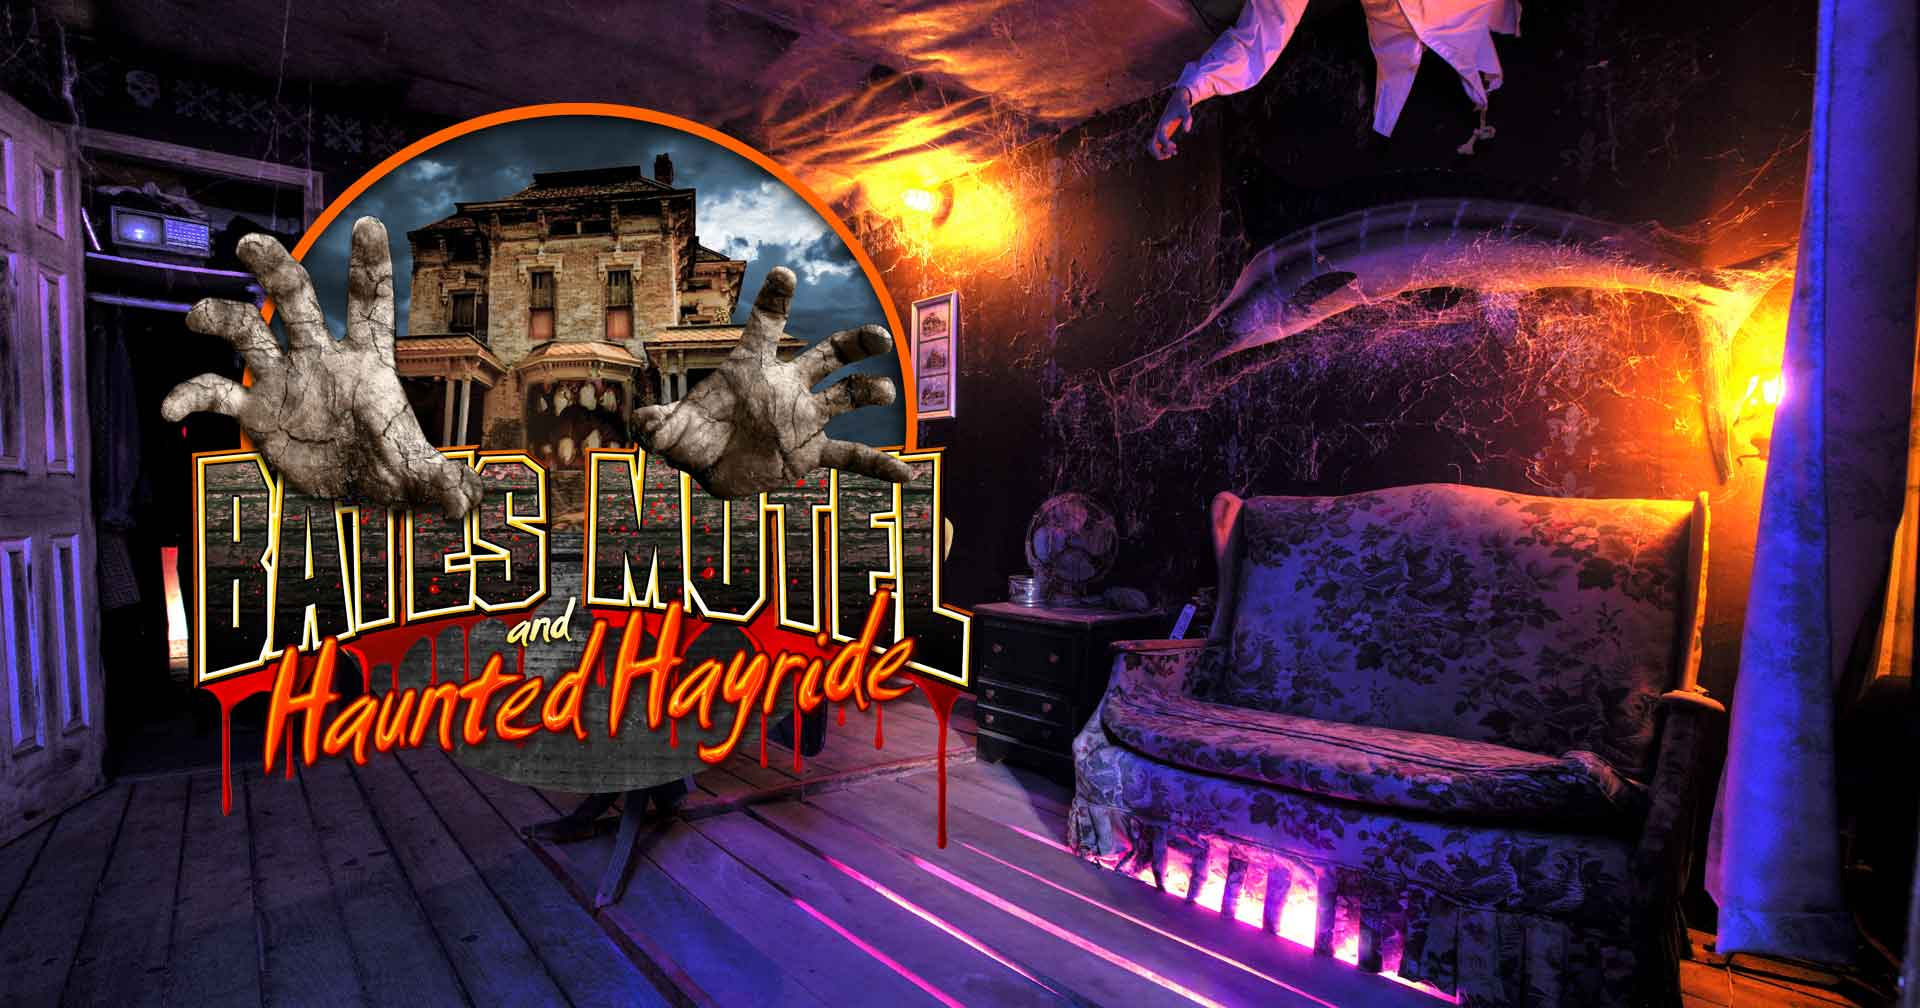 Haunted Hayride and Bates Motel Haunted House Pennsylvania